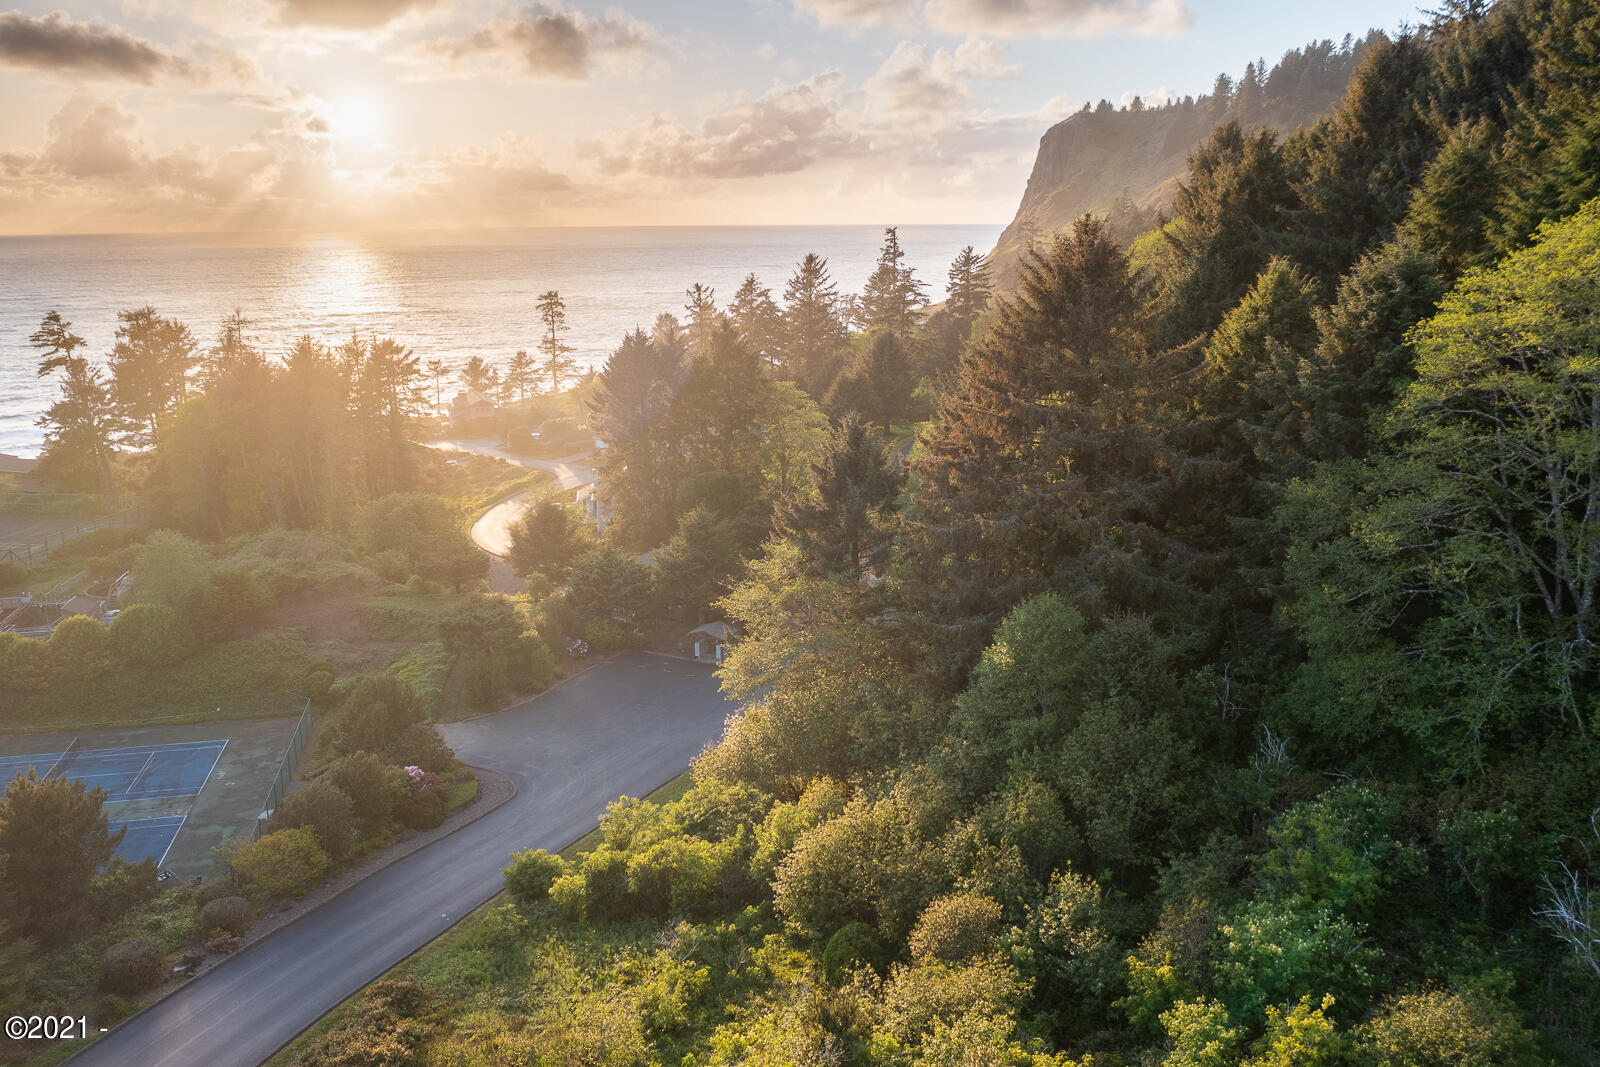 LOT 20 Sea Crest Dr, Otter Rock, OR 97369 - Drone View